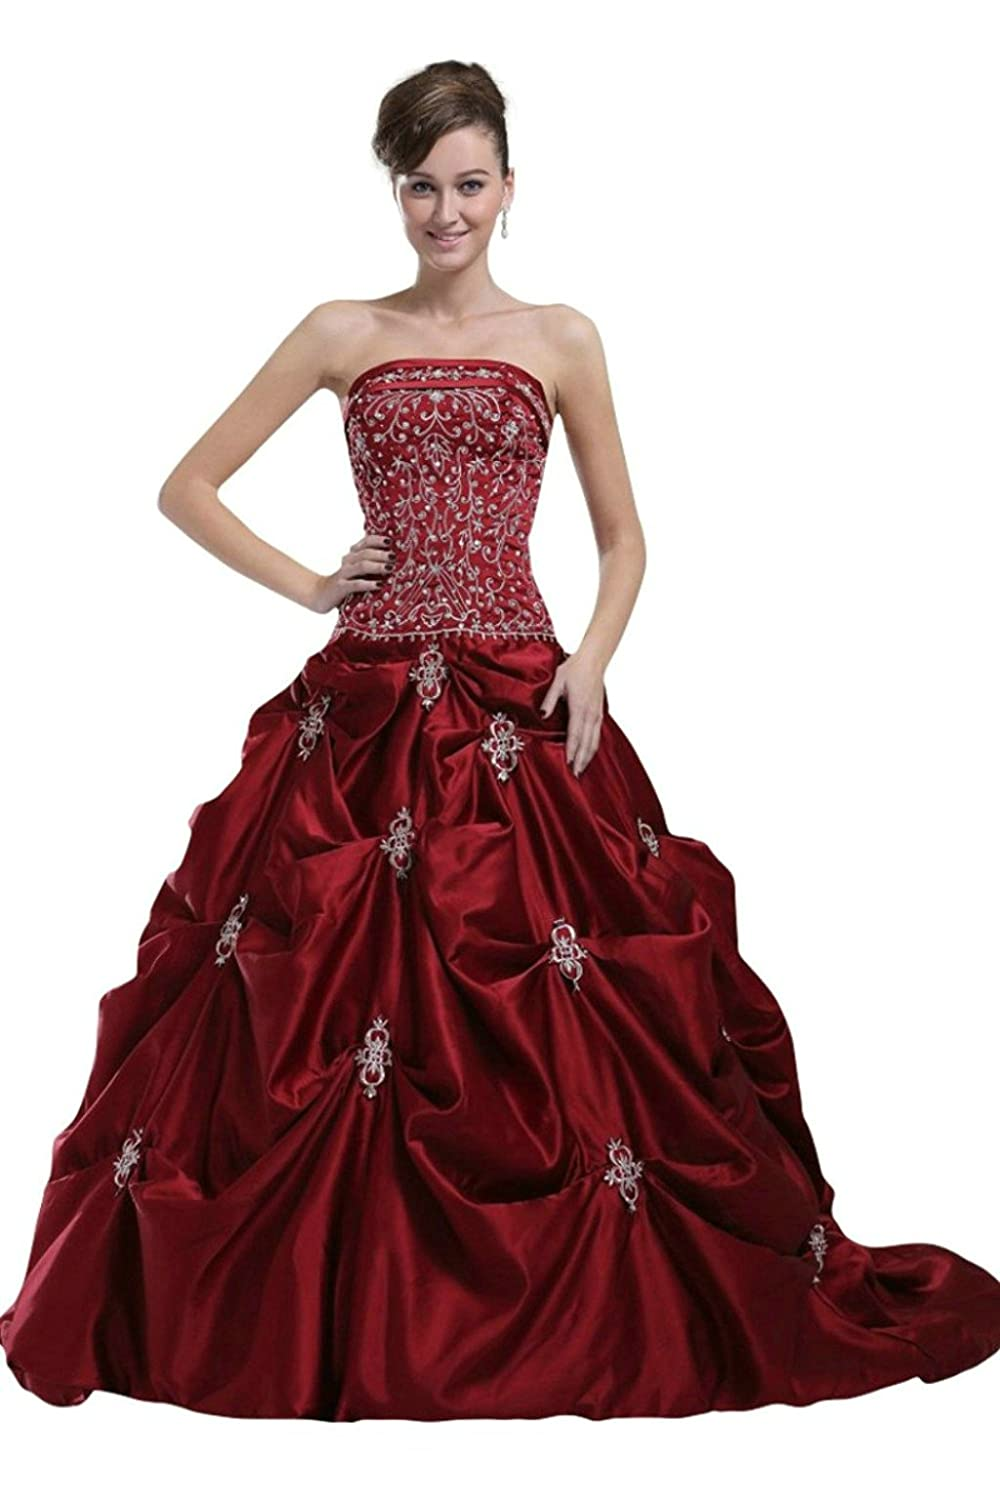 Vantexi Women's Embroidery Burgundy Wedding Dress Bridal Gown